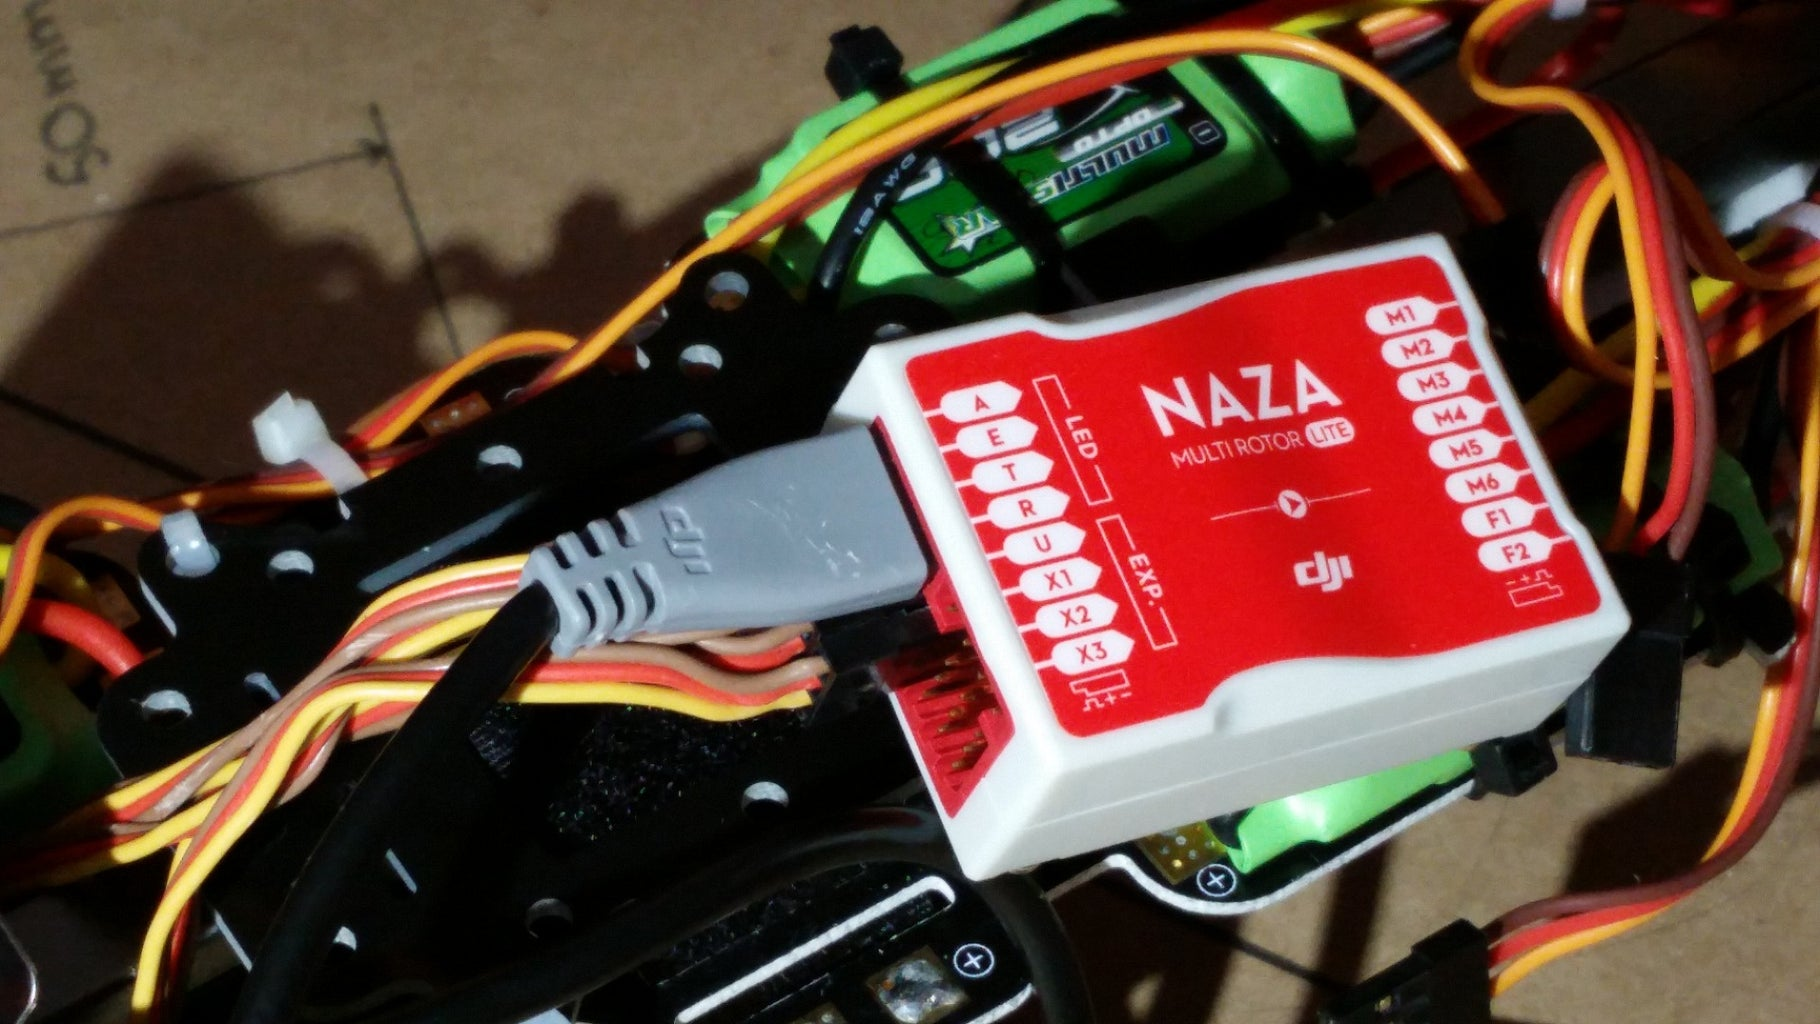 Connect the LED Indicator to the Naza M Lite